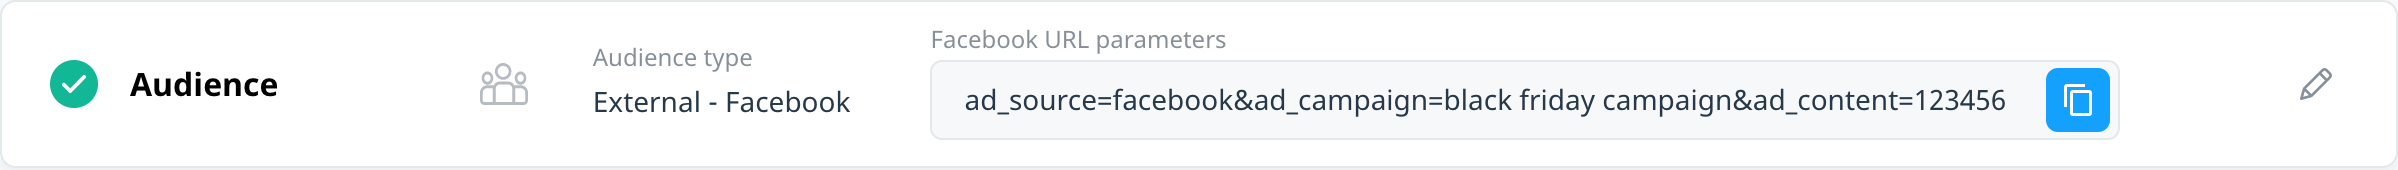 The campaign Audience block, showing an external audience of Facebook and the URL you must copy to your linked Facebook campaign